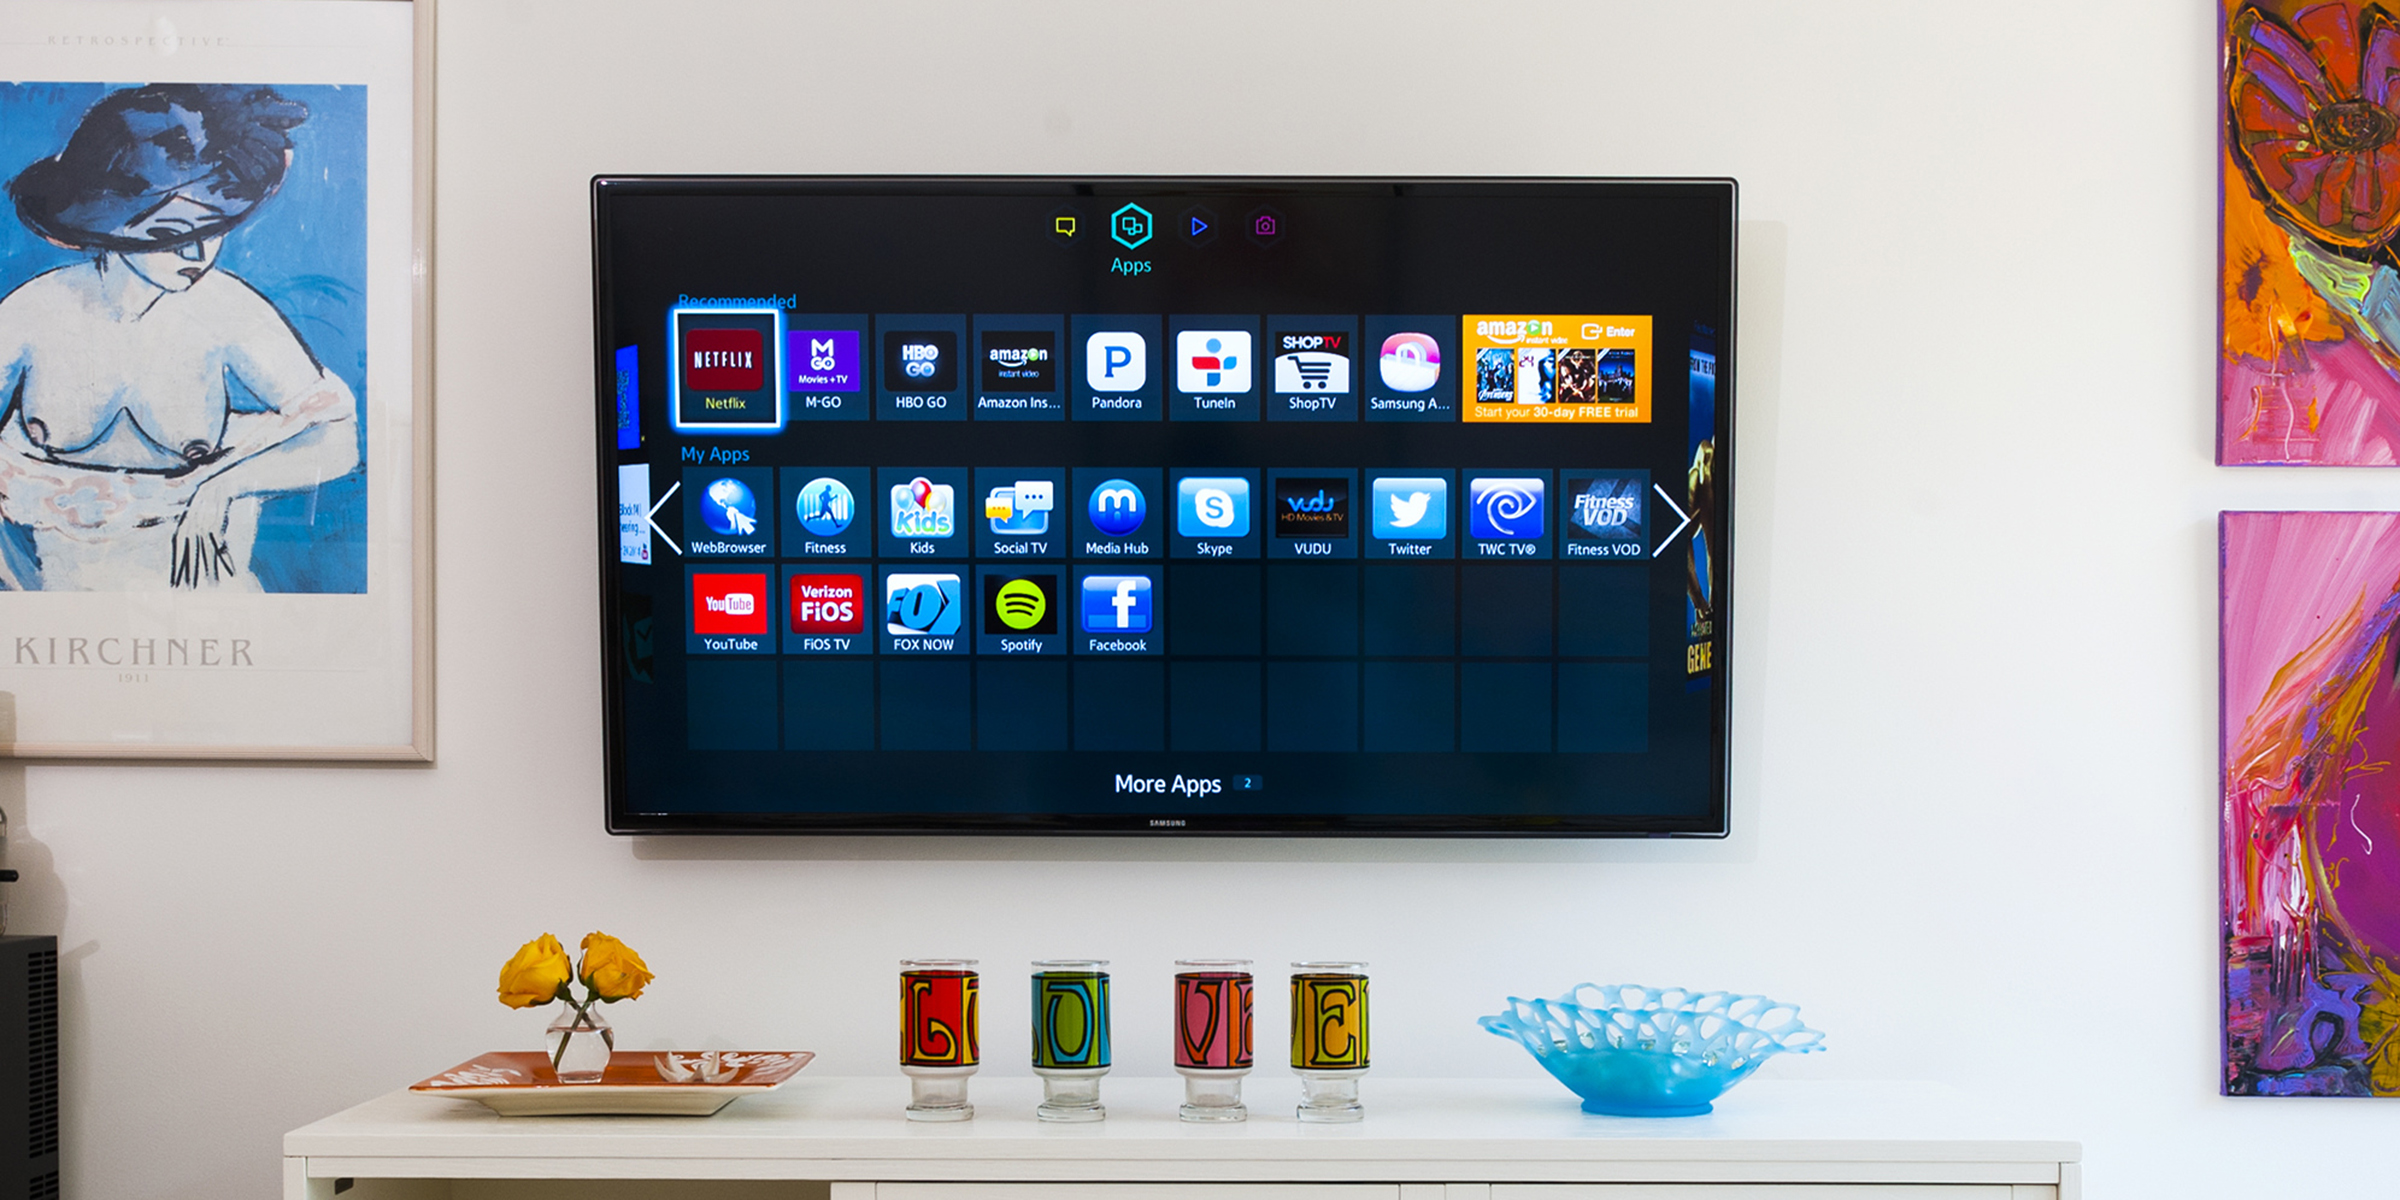 How to outsmart your smart TV so it can't track you